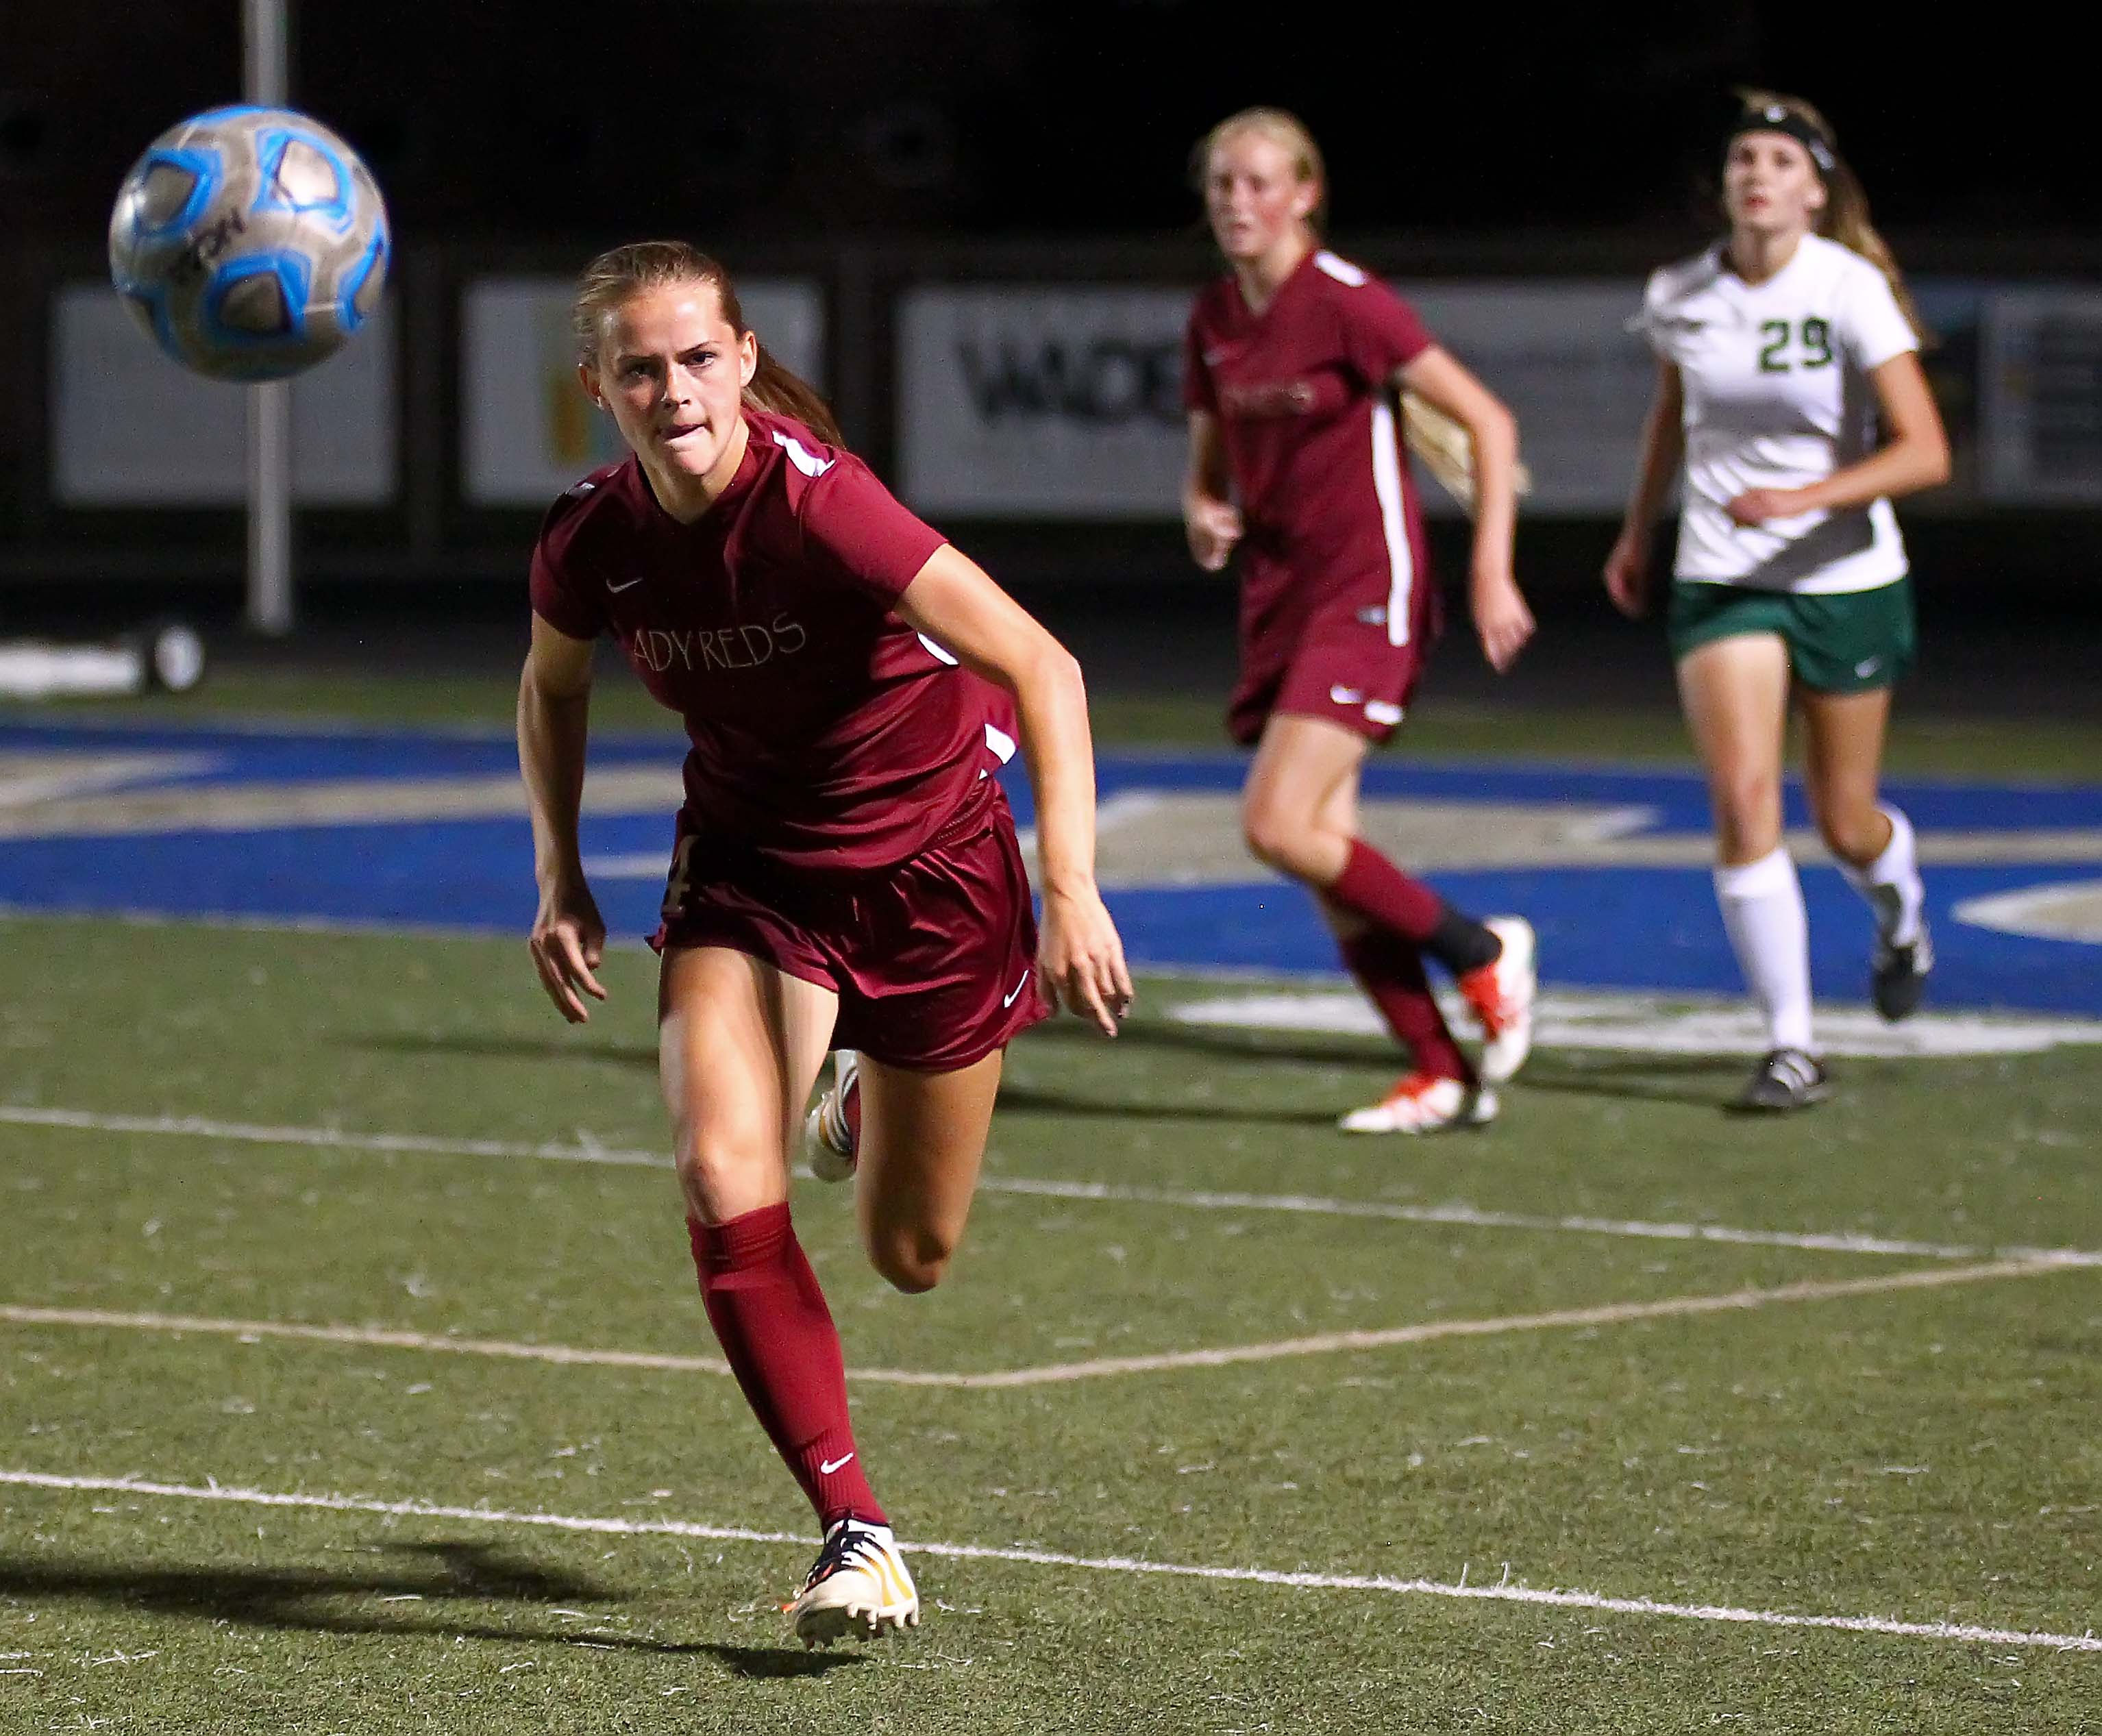 Cedar's Julia Hunt (4), had 10 goals this year for the Lady Reds. | Photo by Robert Hoppie, ASPpix.com, St. George News